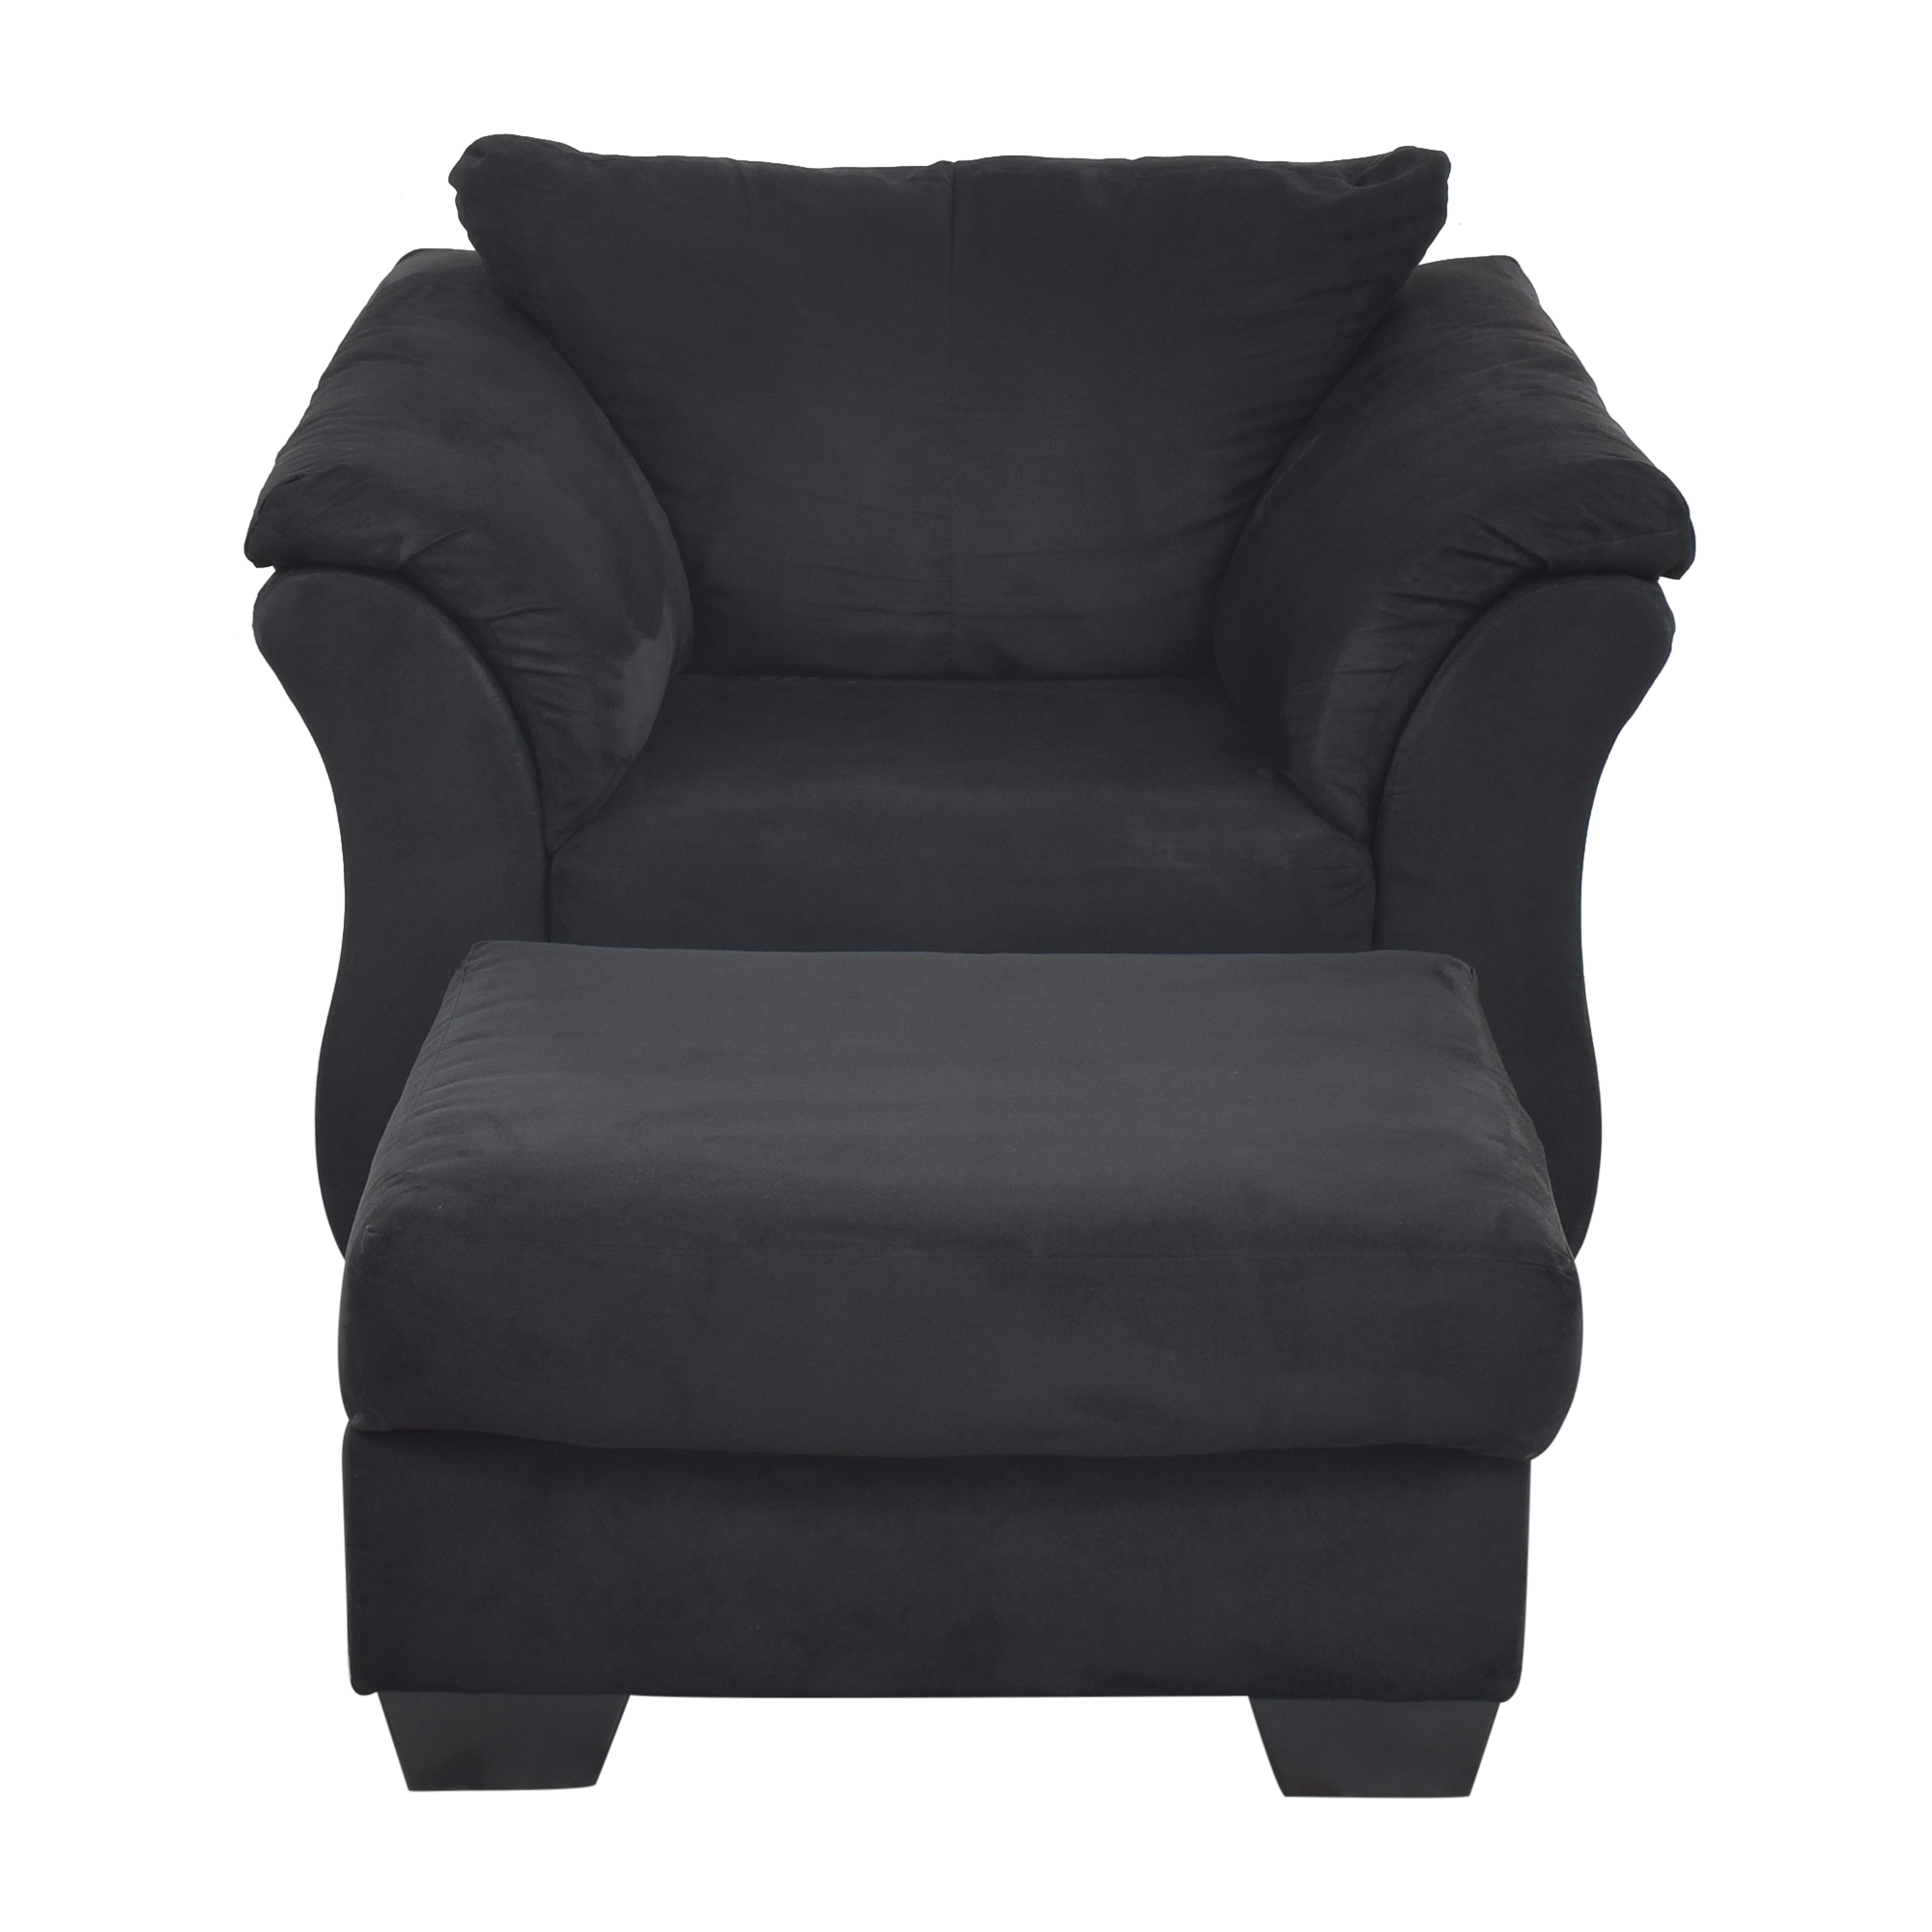 74 Off Ashley Furniture Ashley Furniture Darcy Cobblestone Chair And Ottoman Chairs